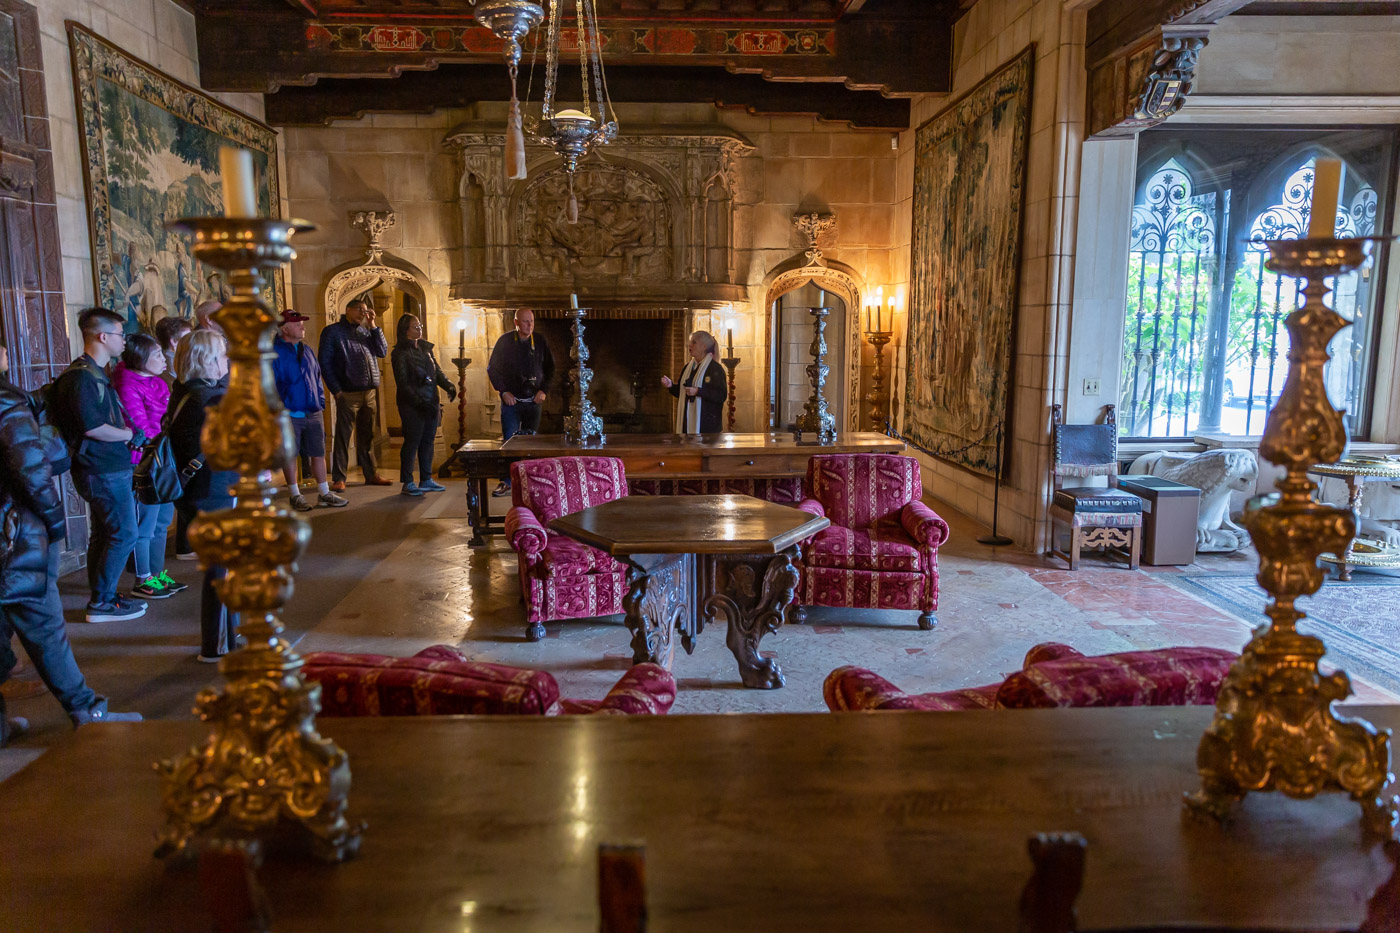 The Morning Room, Grand Rooms Tour. Hearst Castle Tours